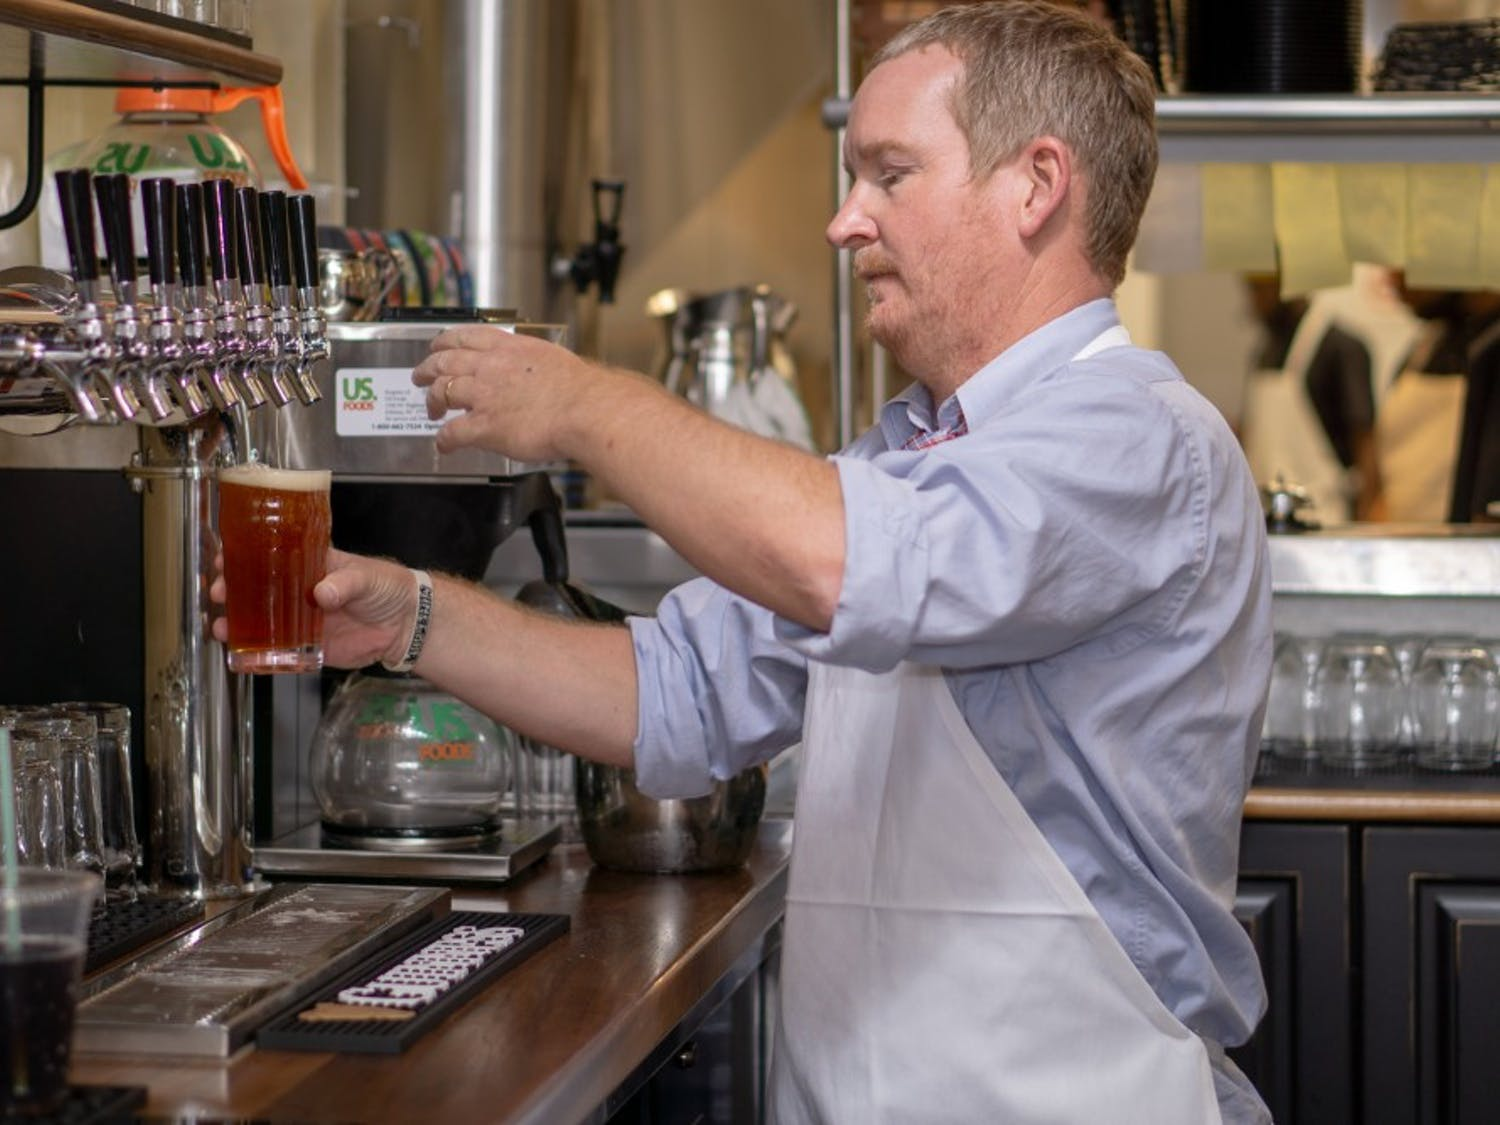 Award winning bartender Wayne Jordan pours from the tap at Al's Pub Shack.  Now open to the public Al's Pub Shack is located at 50050 Governors Drive Chapel Hill, N.C.